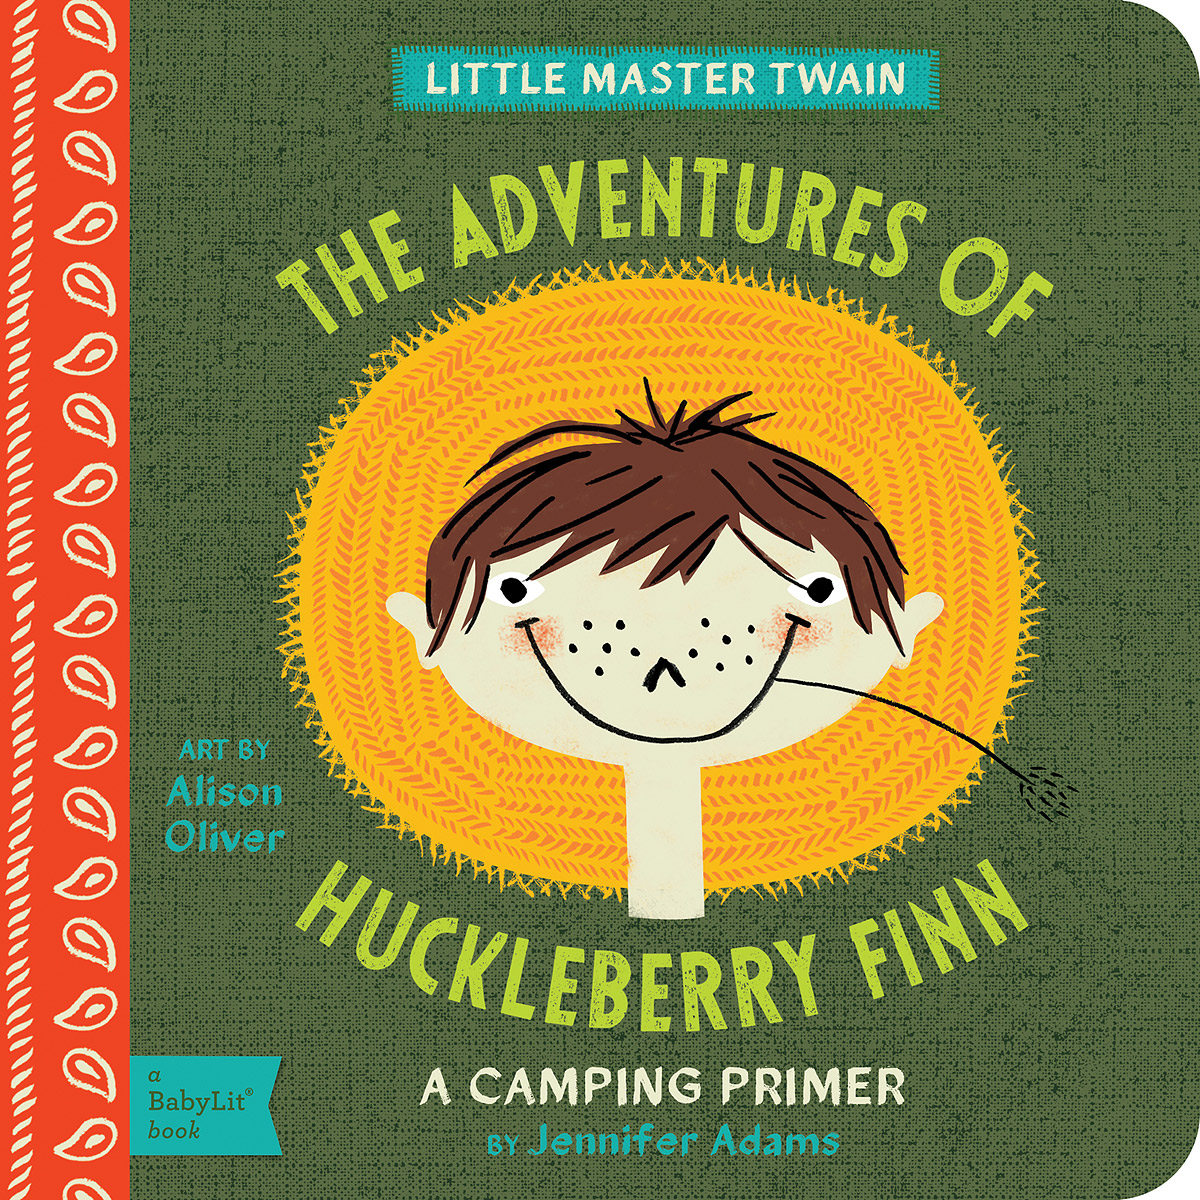 Little Master Twain: The Adventures of Huckleberry Finn twain m the adventures of huckleberry finn